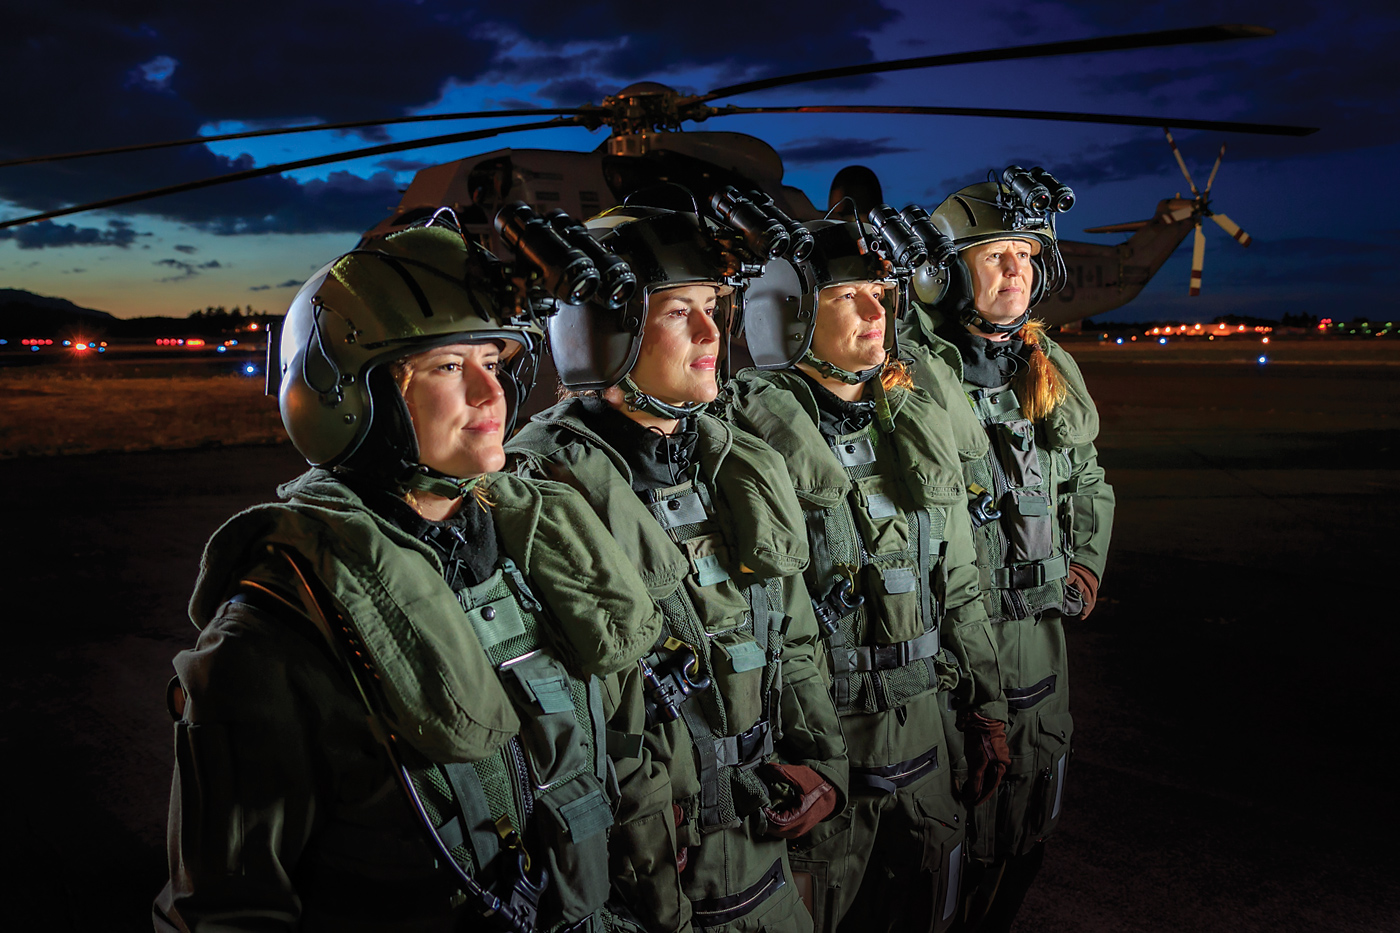 443 Maritime Helicopter Squadron members at Victoria International Airport, left to right: Carly Cake, Chelsey Llewellyn, Tanya Carr and Darlene Such. Heath Moffatt Photo